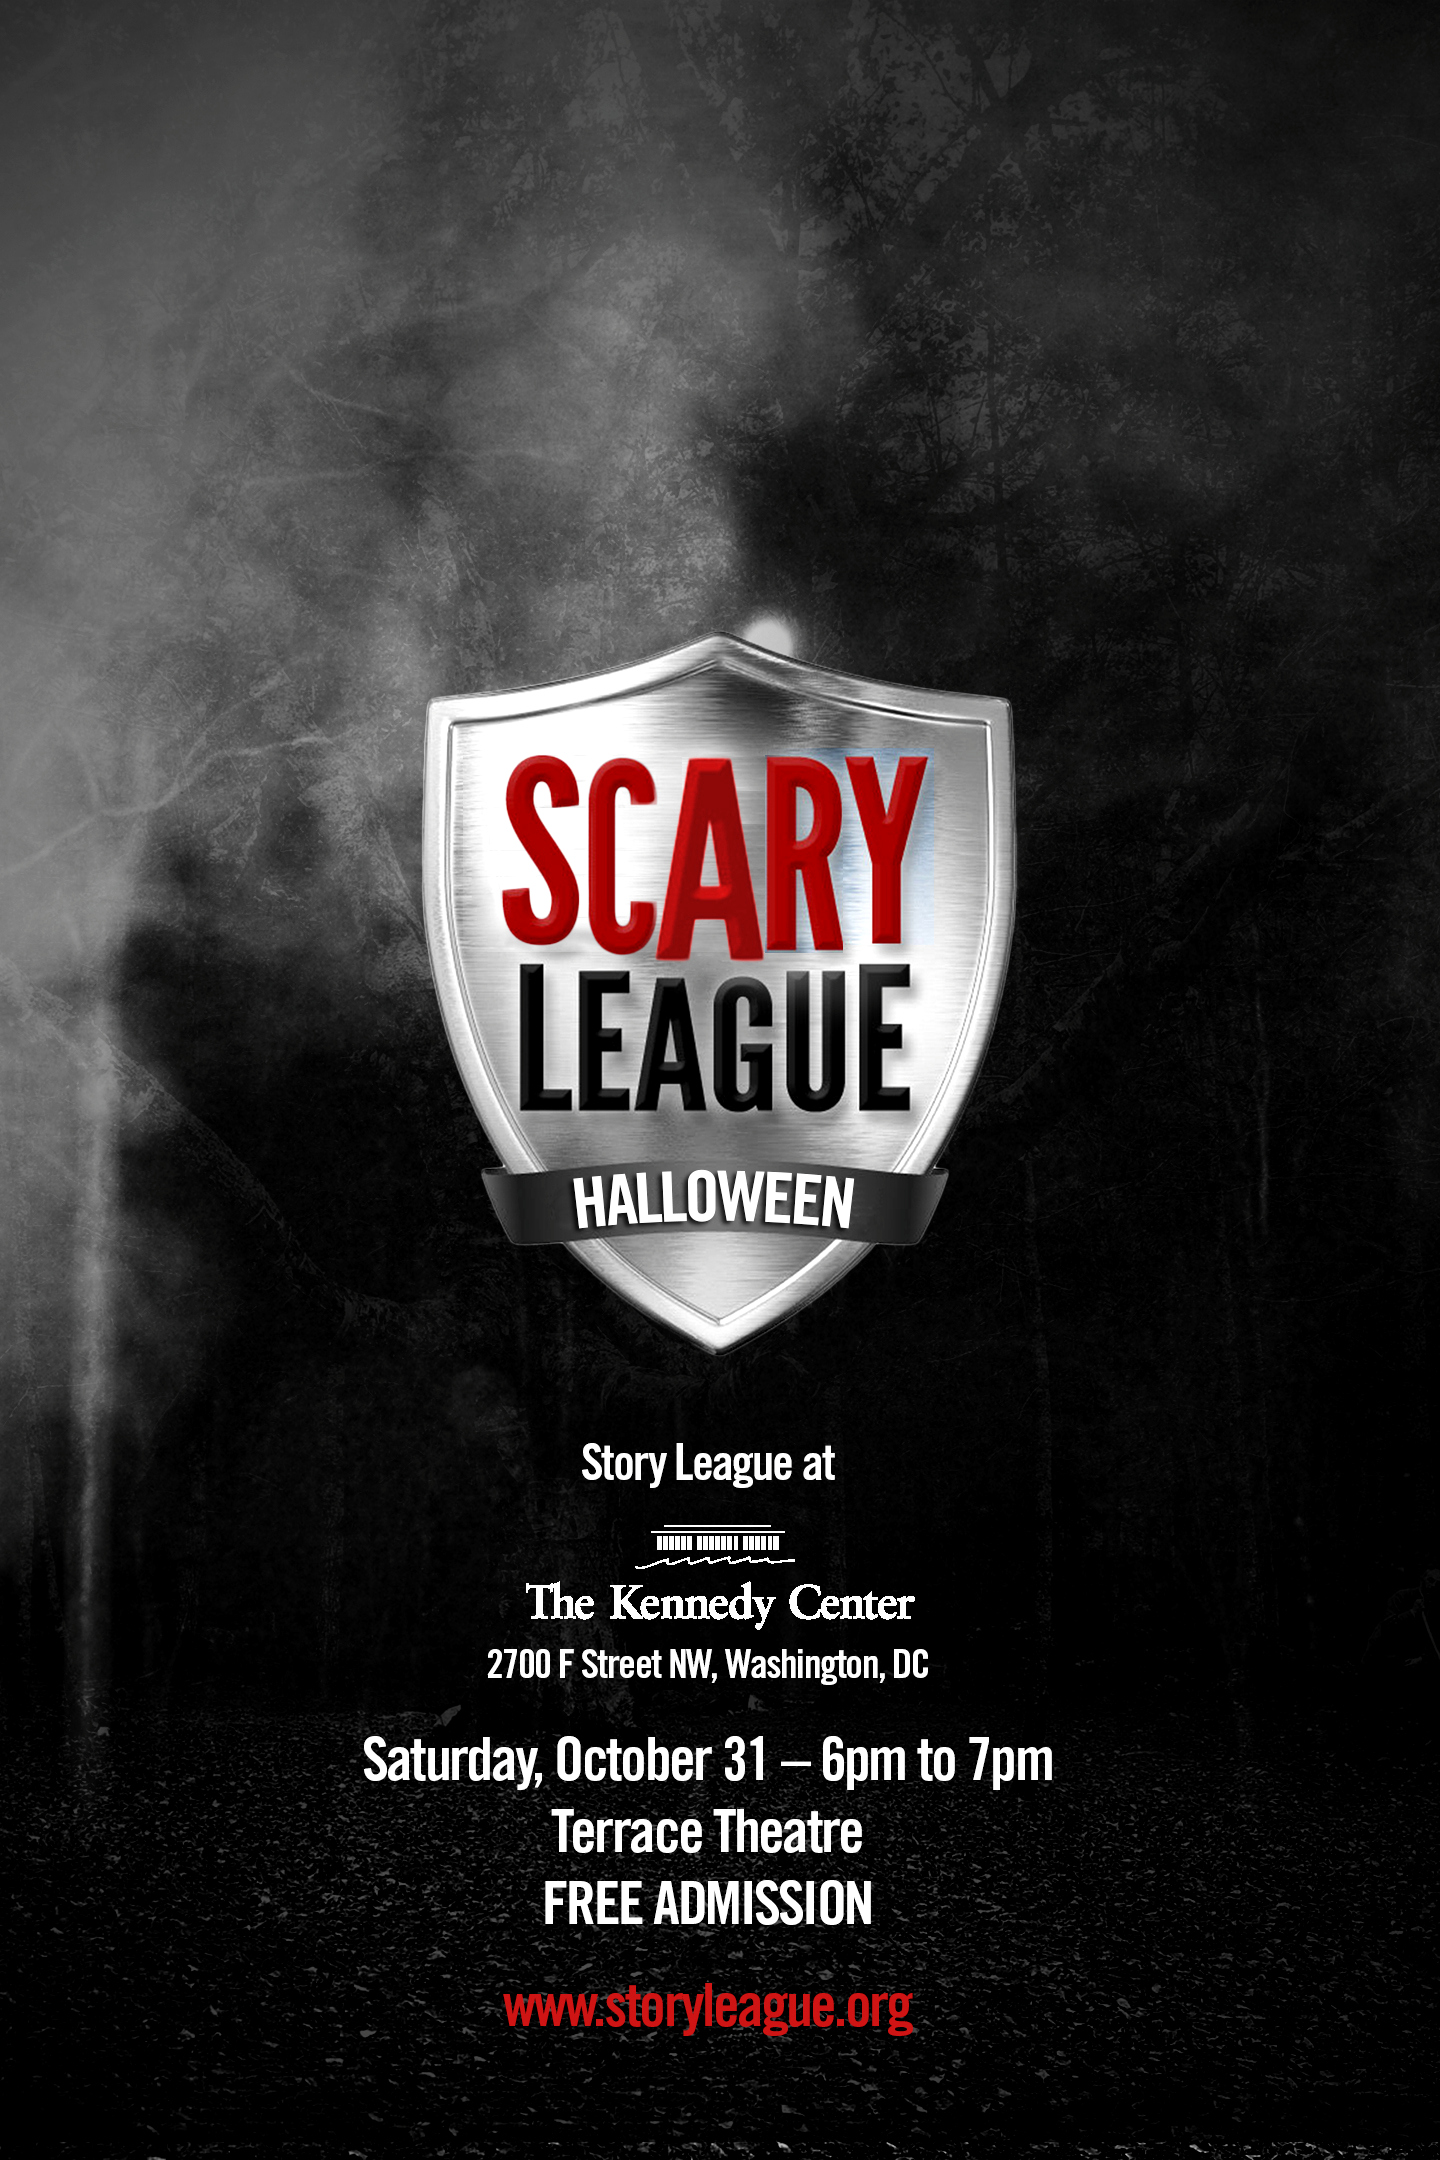 scary league flyer.jpg